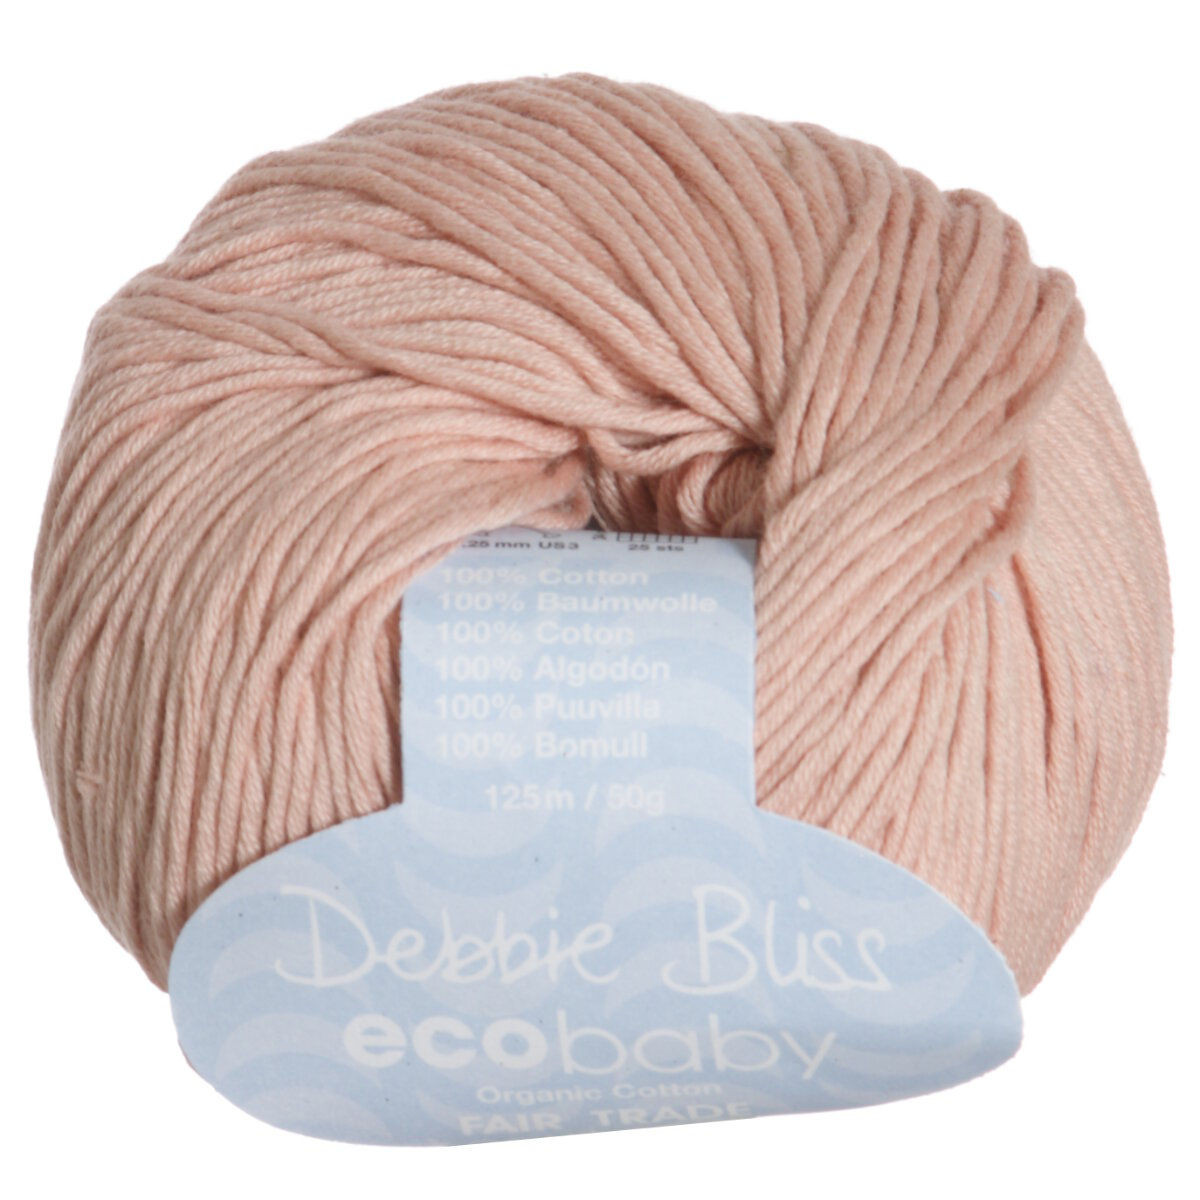 Debbie Bliss Yarn Luxury Debbie Bliss Eco Baby Yarn 42 Baby Pink at Jimmy Beans Wool Of Contemporary 48 Pictures Debbie Bliss Yarn